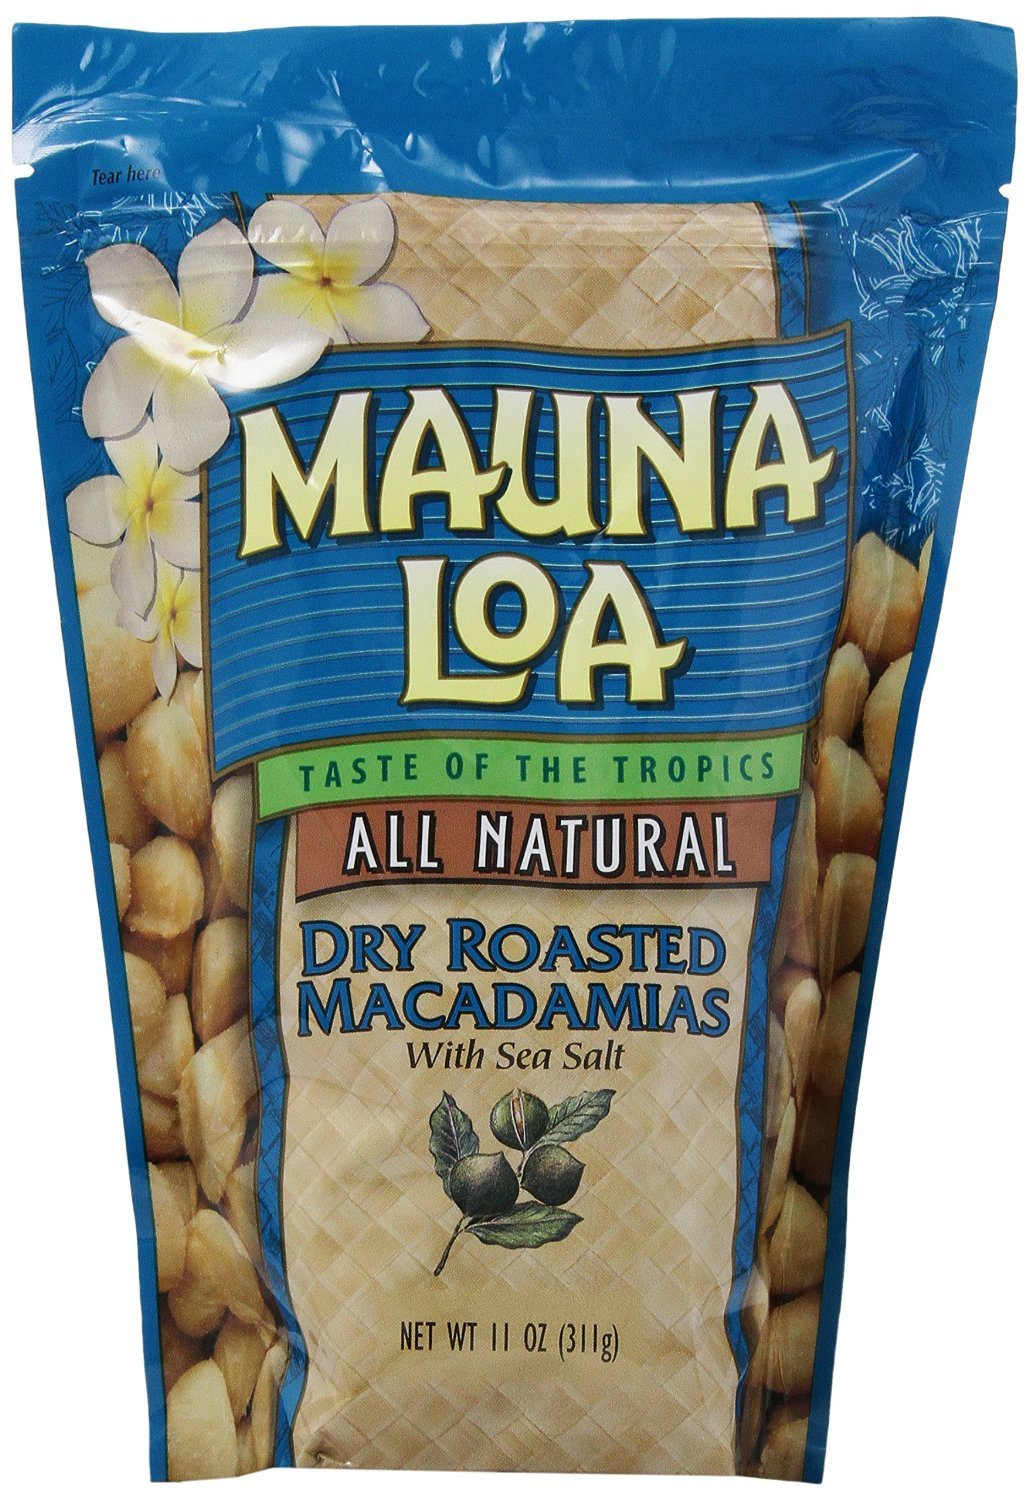 Mauna Loa Dry Roasted Macadamia Nuts 2 Bags 11oz each